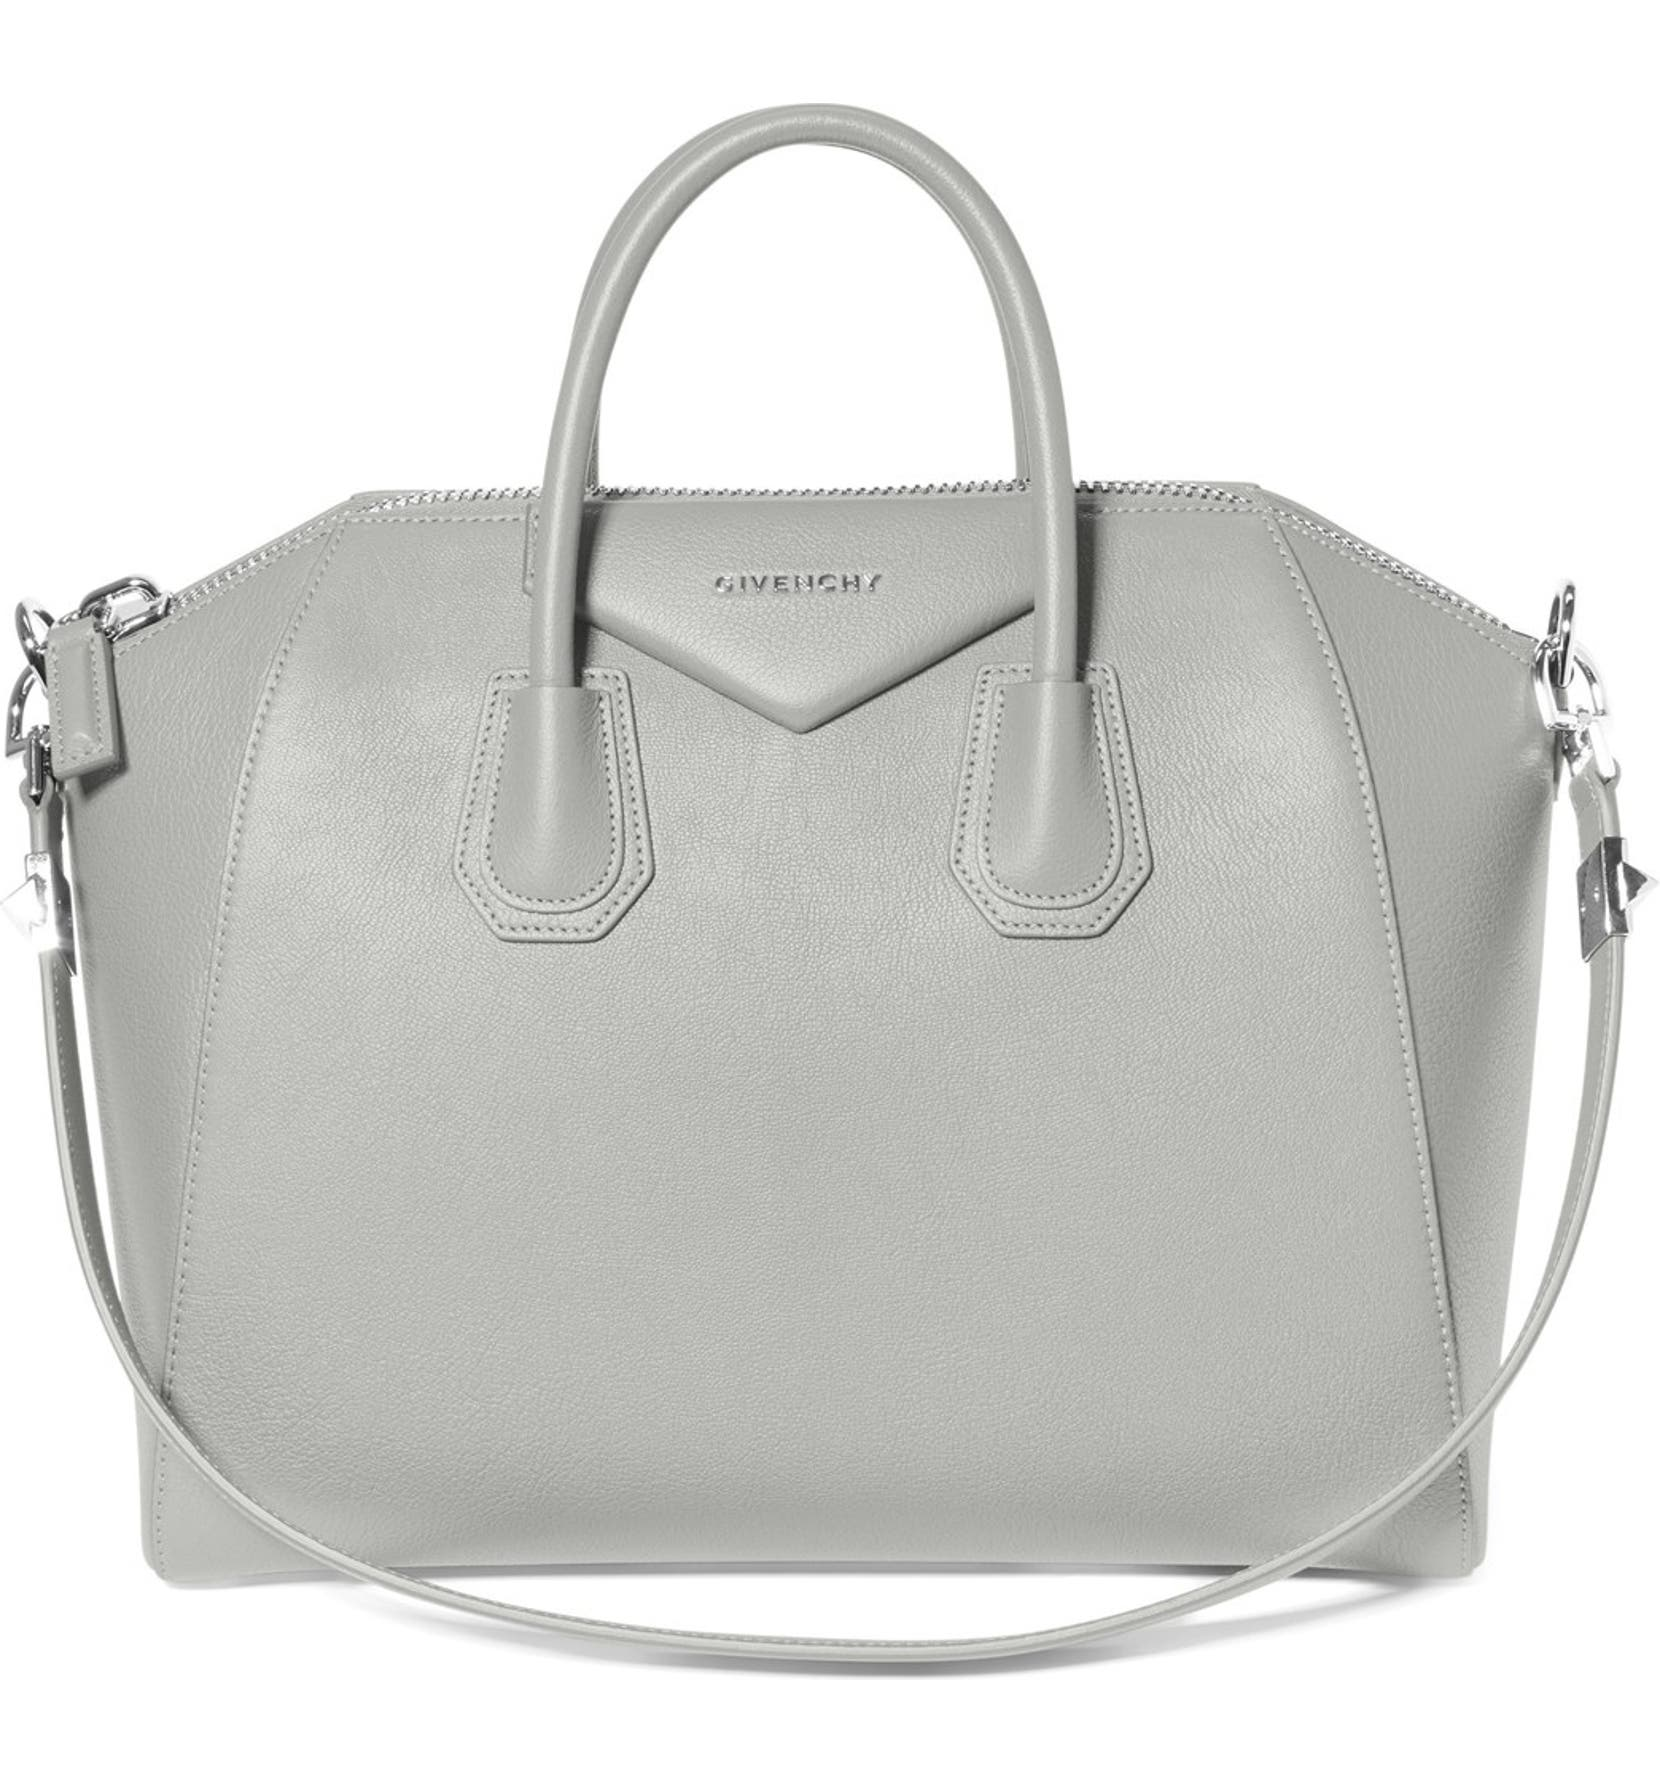 Givenchy  Medium Antigona  Sugar Leather Satchel  35d57e1a3708f